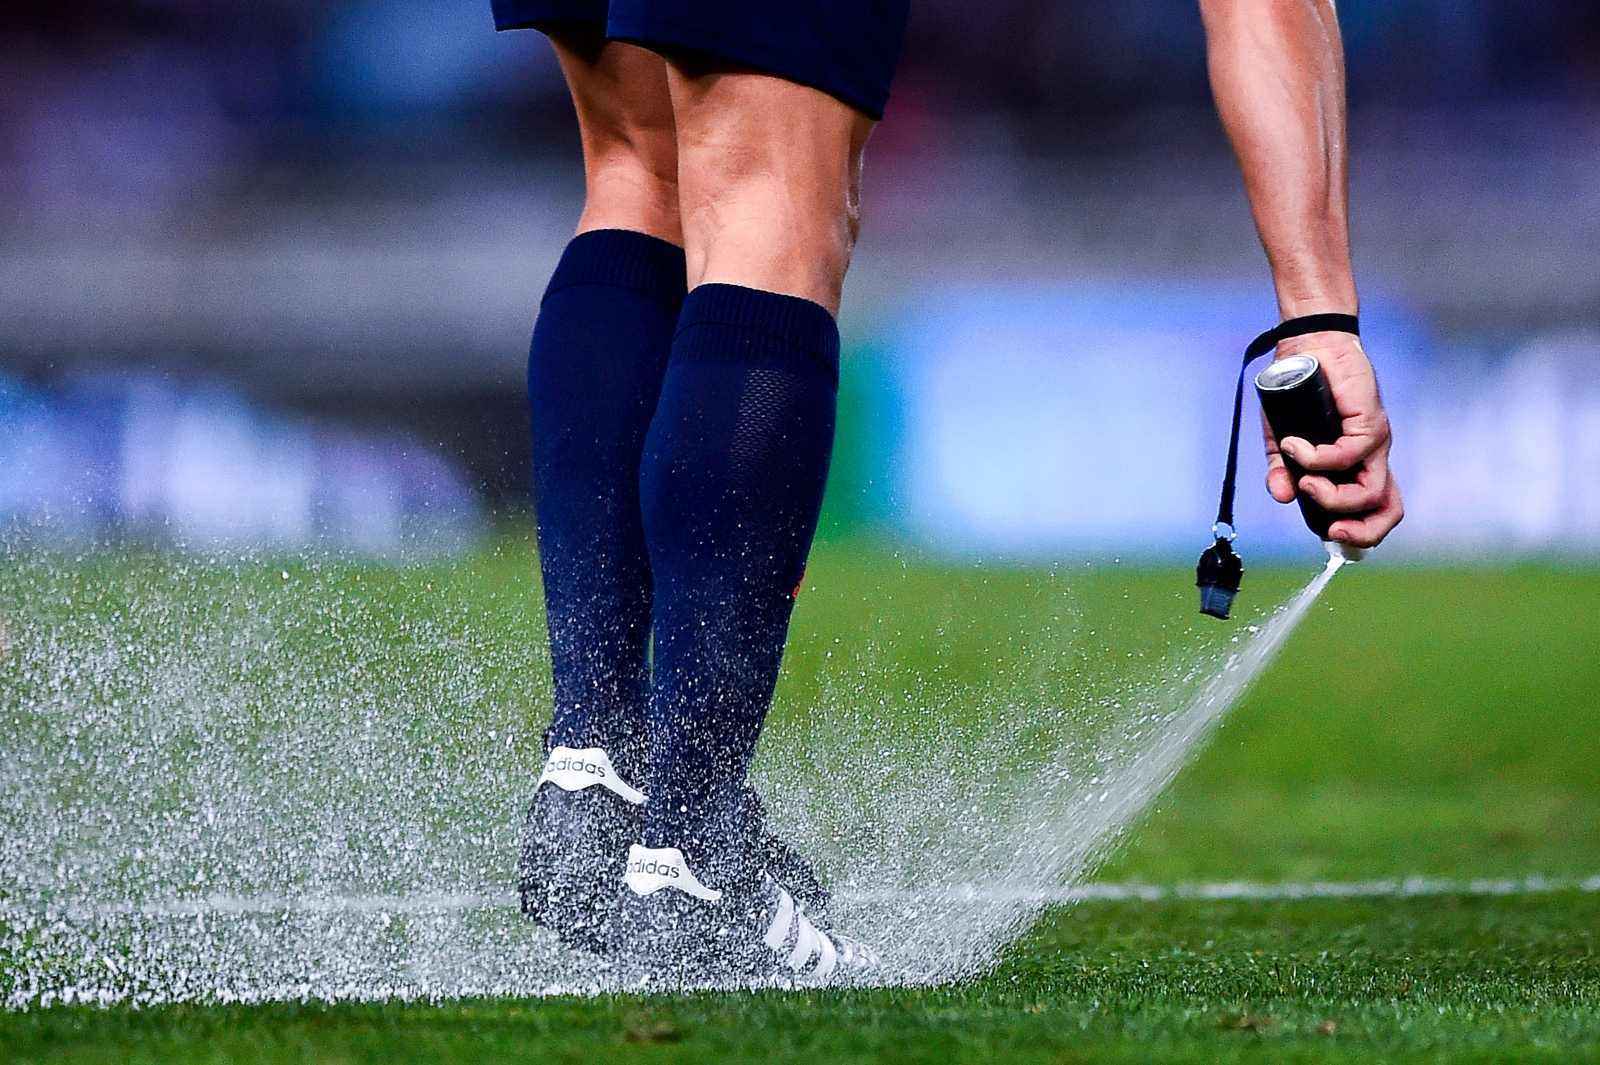 Football referee banned from football